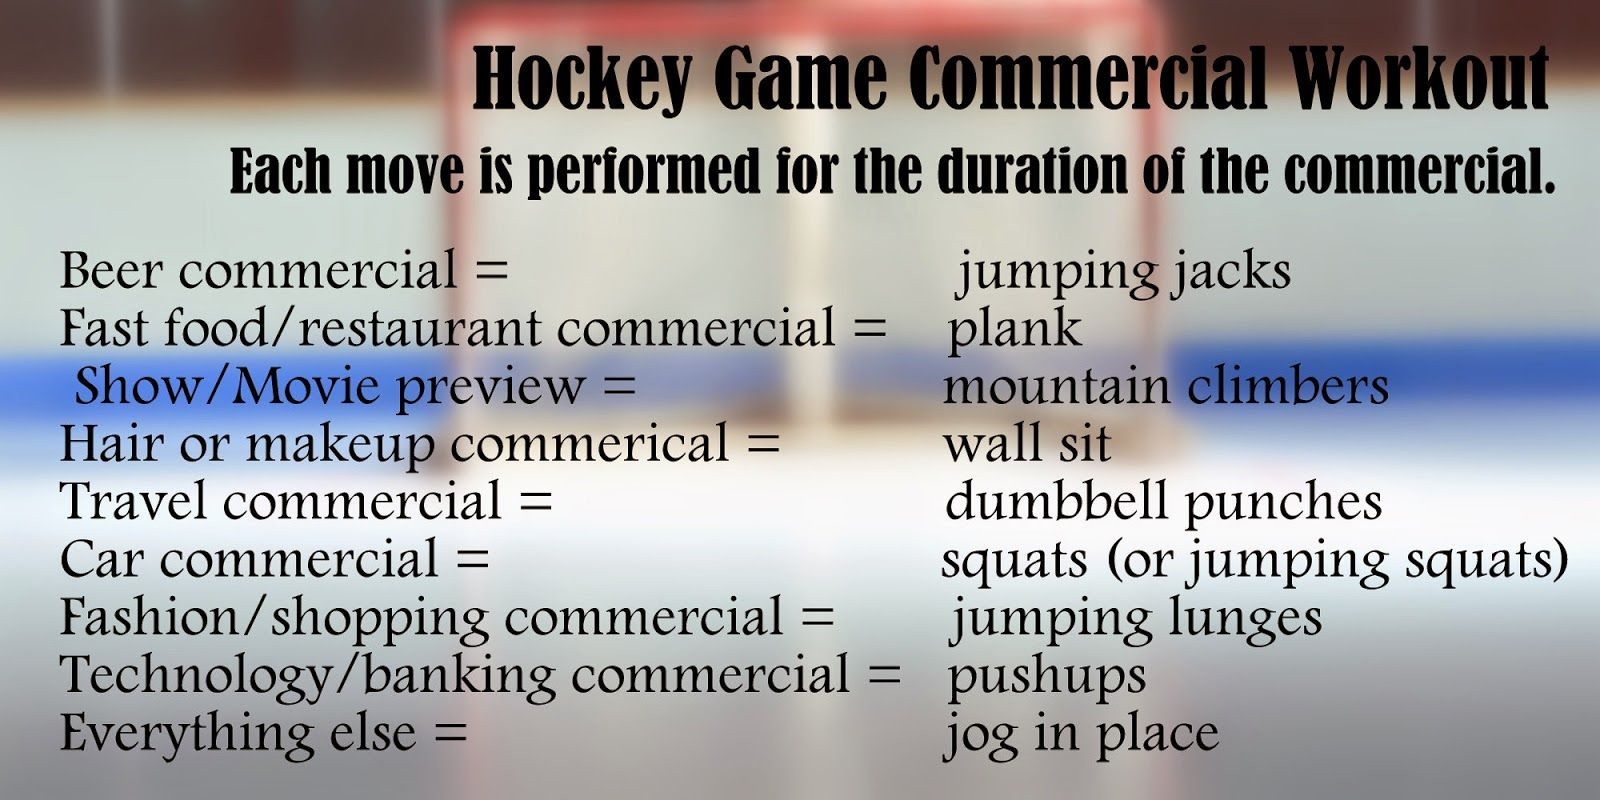 Canadian Girl Runs Hockey Game Workouts Tv Commercial Workout Workout Get Fit